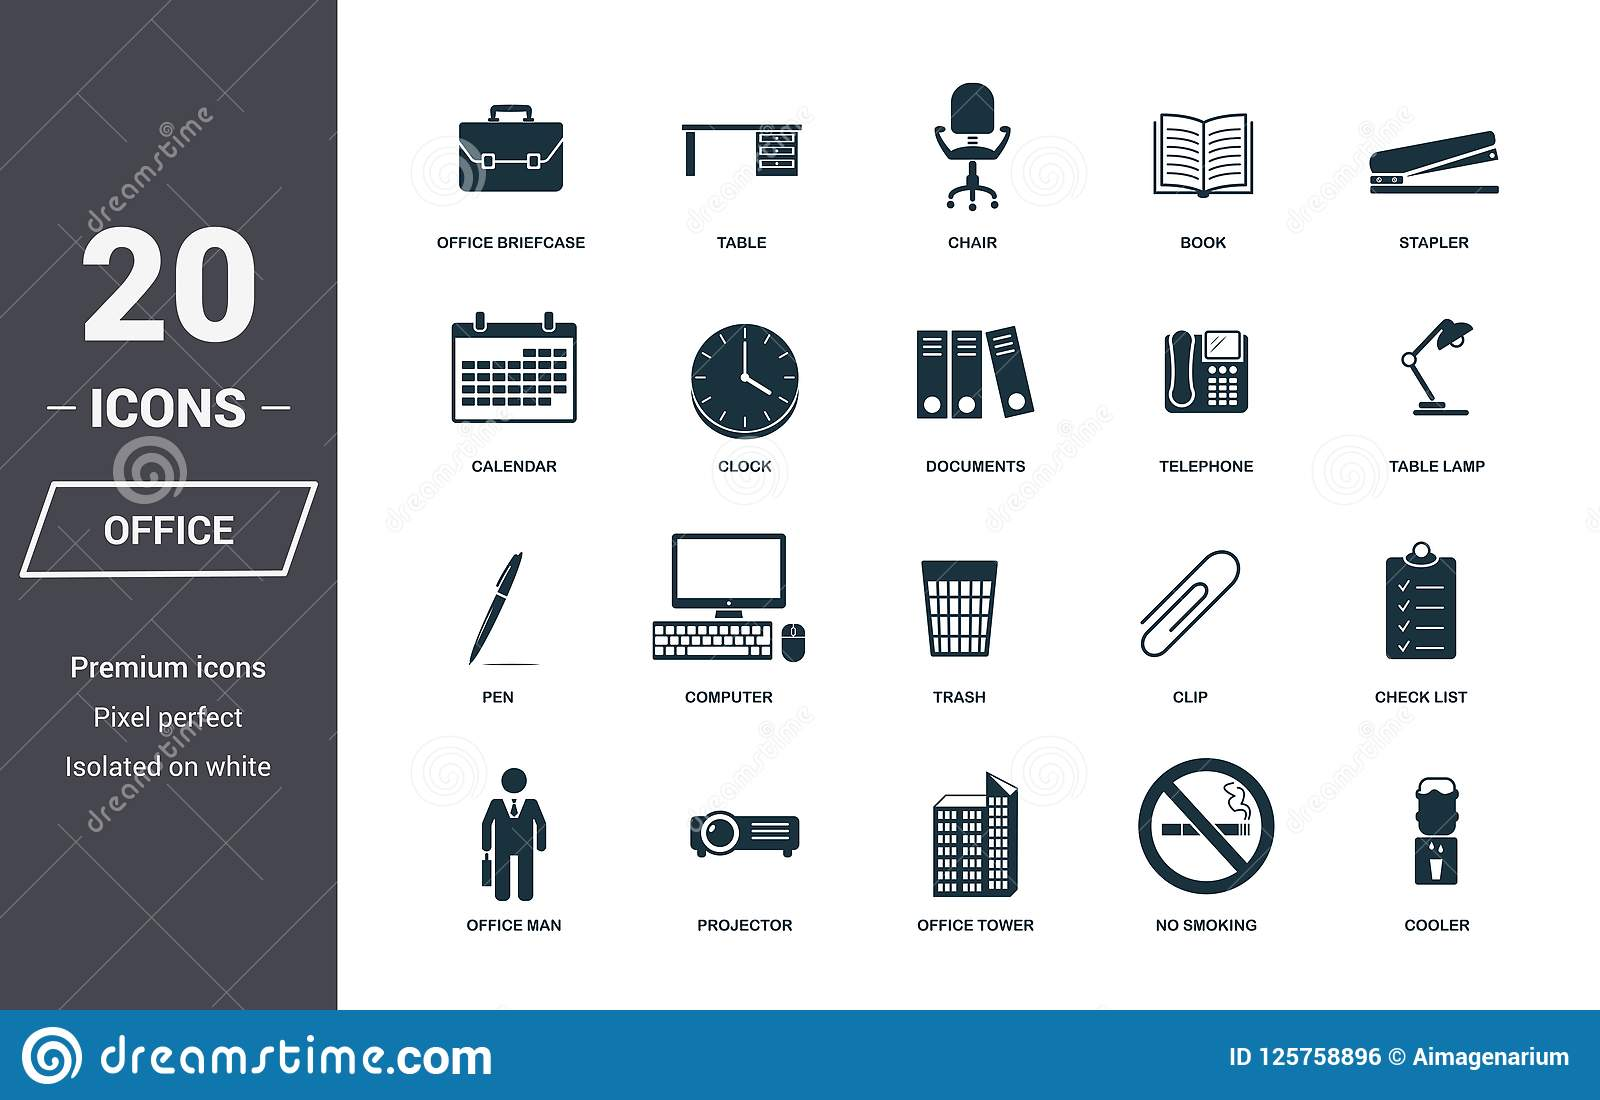 Office Icons Set Premium Quality Symbol Collection Office Icon Set Simple Elements Ready To Use In Web Design Apps Software Stock Illustration Illustration Of Businessman Business 125758896